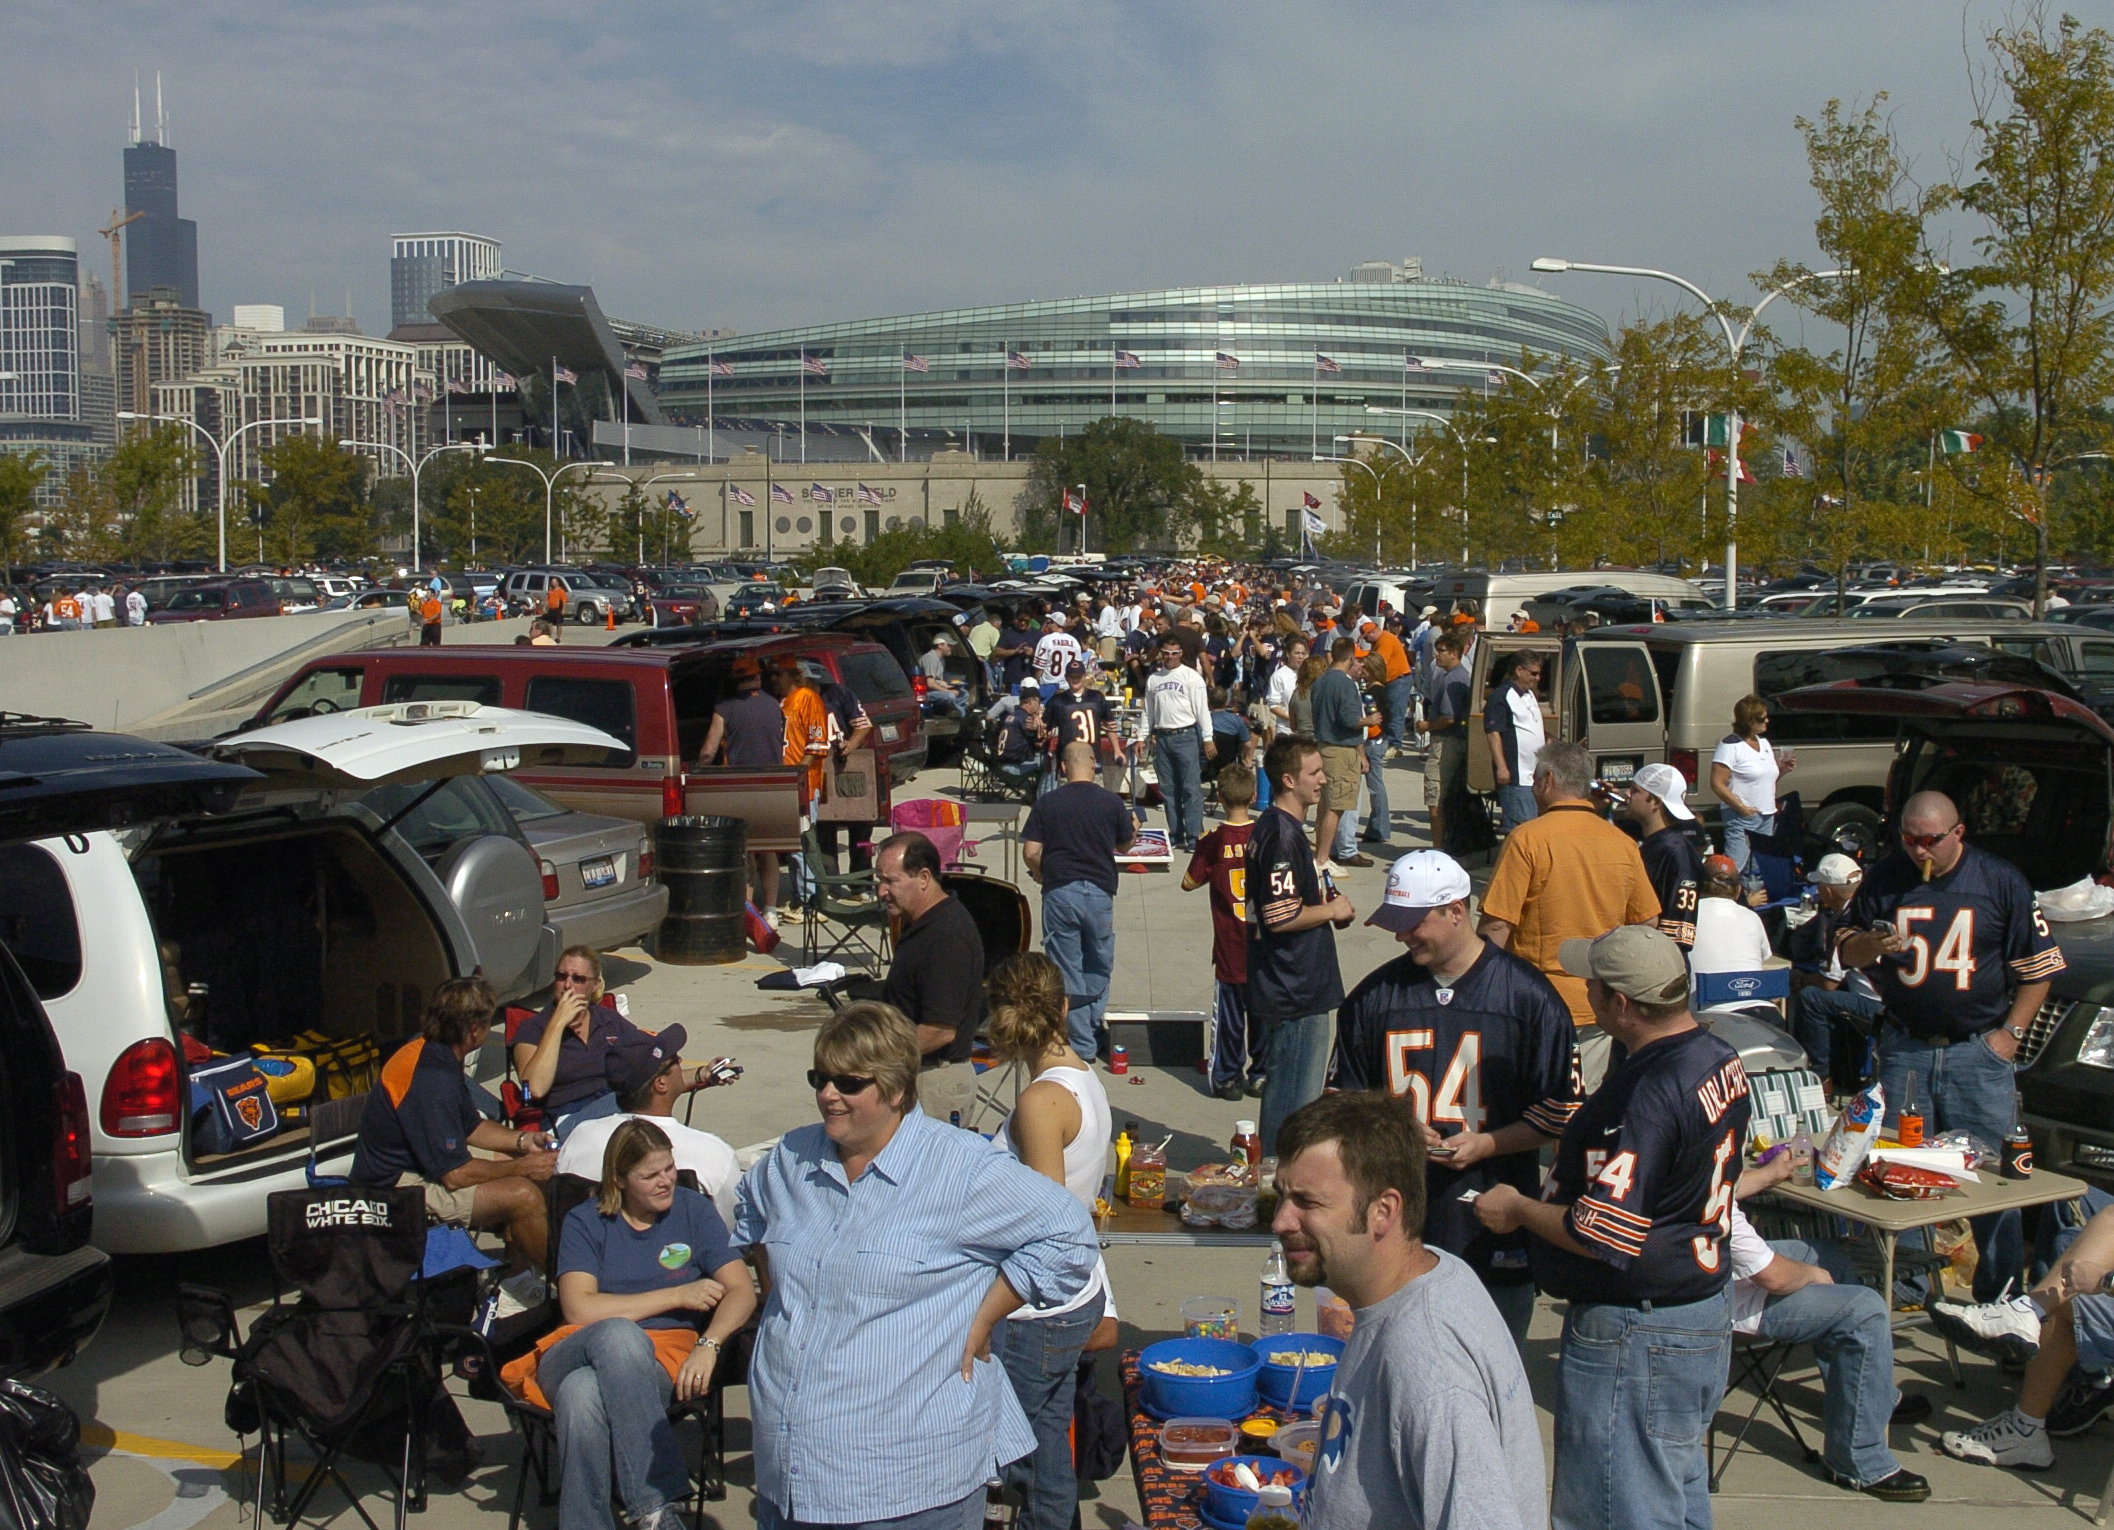 Bears tailgaters at Soldier Field